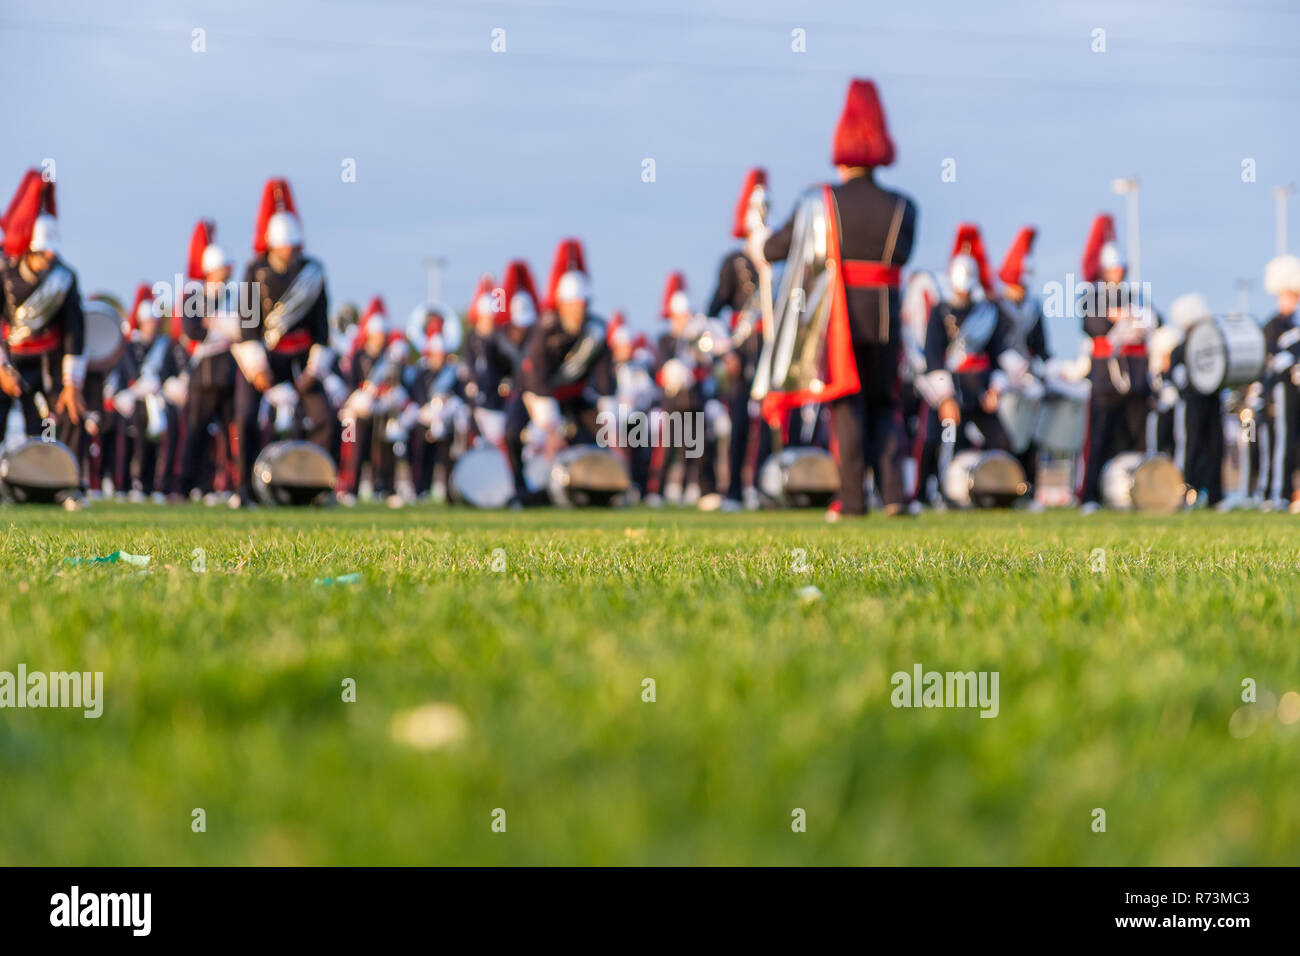 Details From A Music Show And Marching Band Defocused